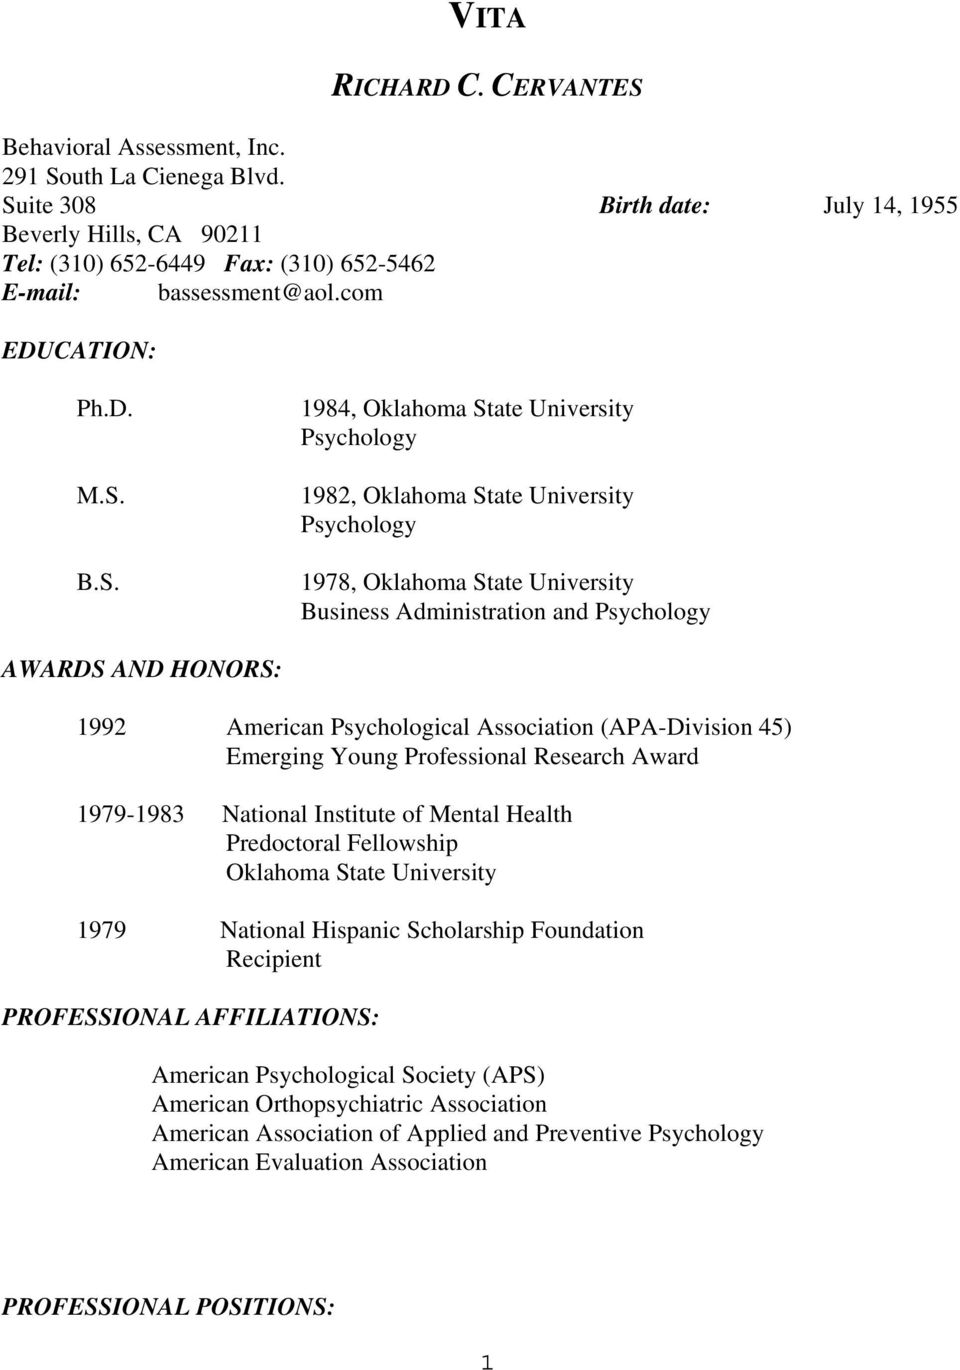 1982, Oklahoma State University Psychology 1978, Oklahoma State University Business Administration and Psychology AWARDS AND HONORS: 1992 American Psychological Association (APA-Division 45) Emerging